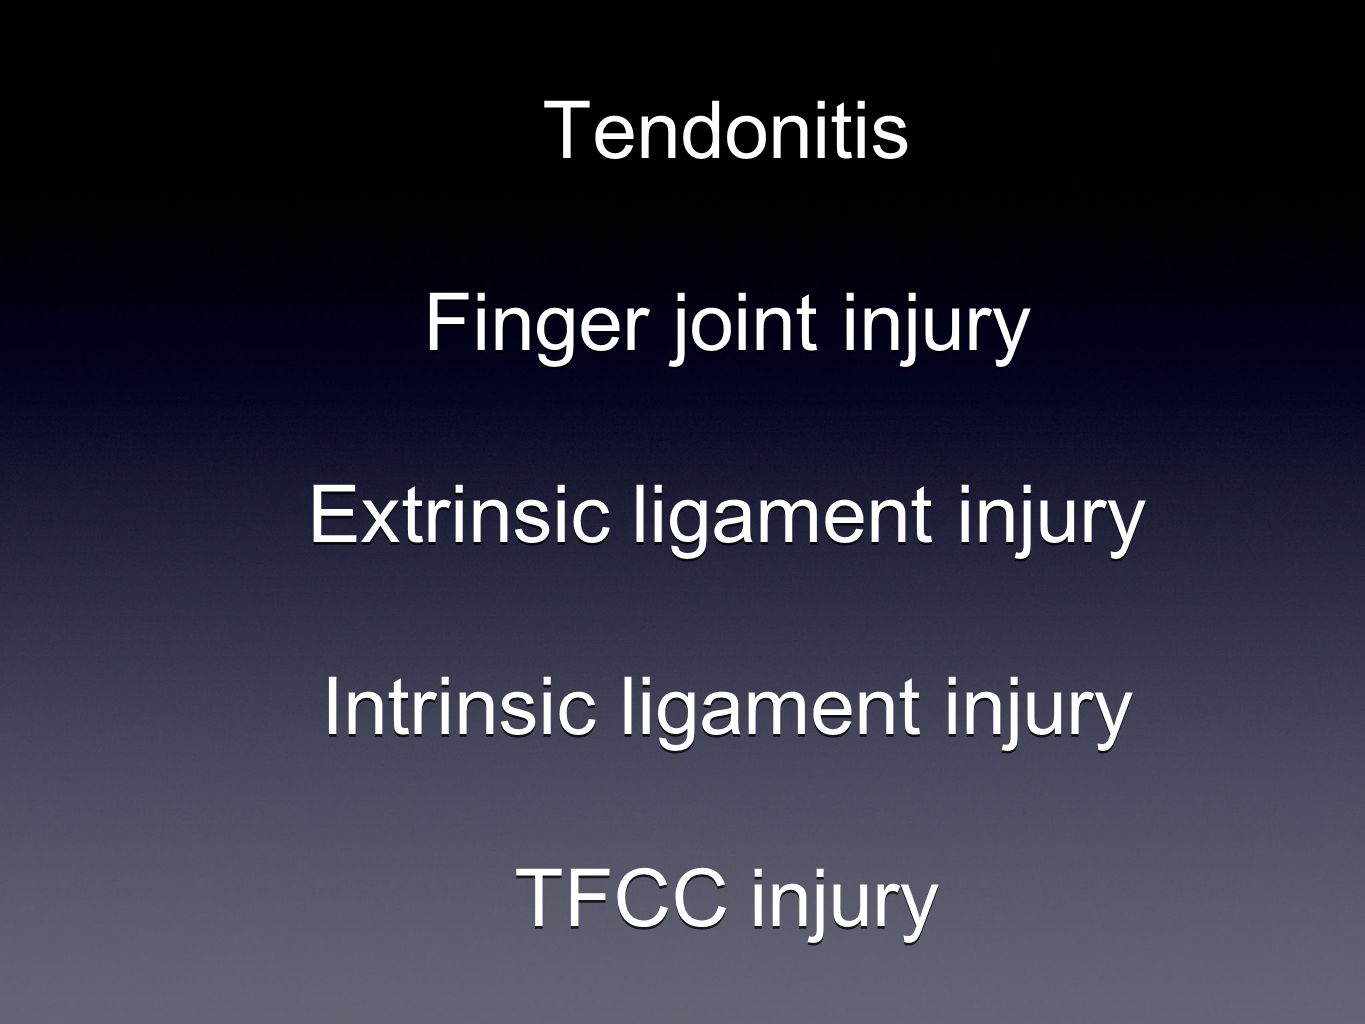 Tendonitis Finger joint injury Extrinsic ligament injury Intrinsic ligament injury TFCC injury